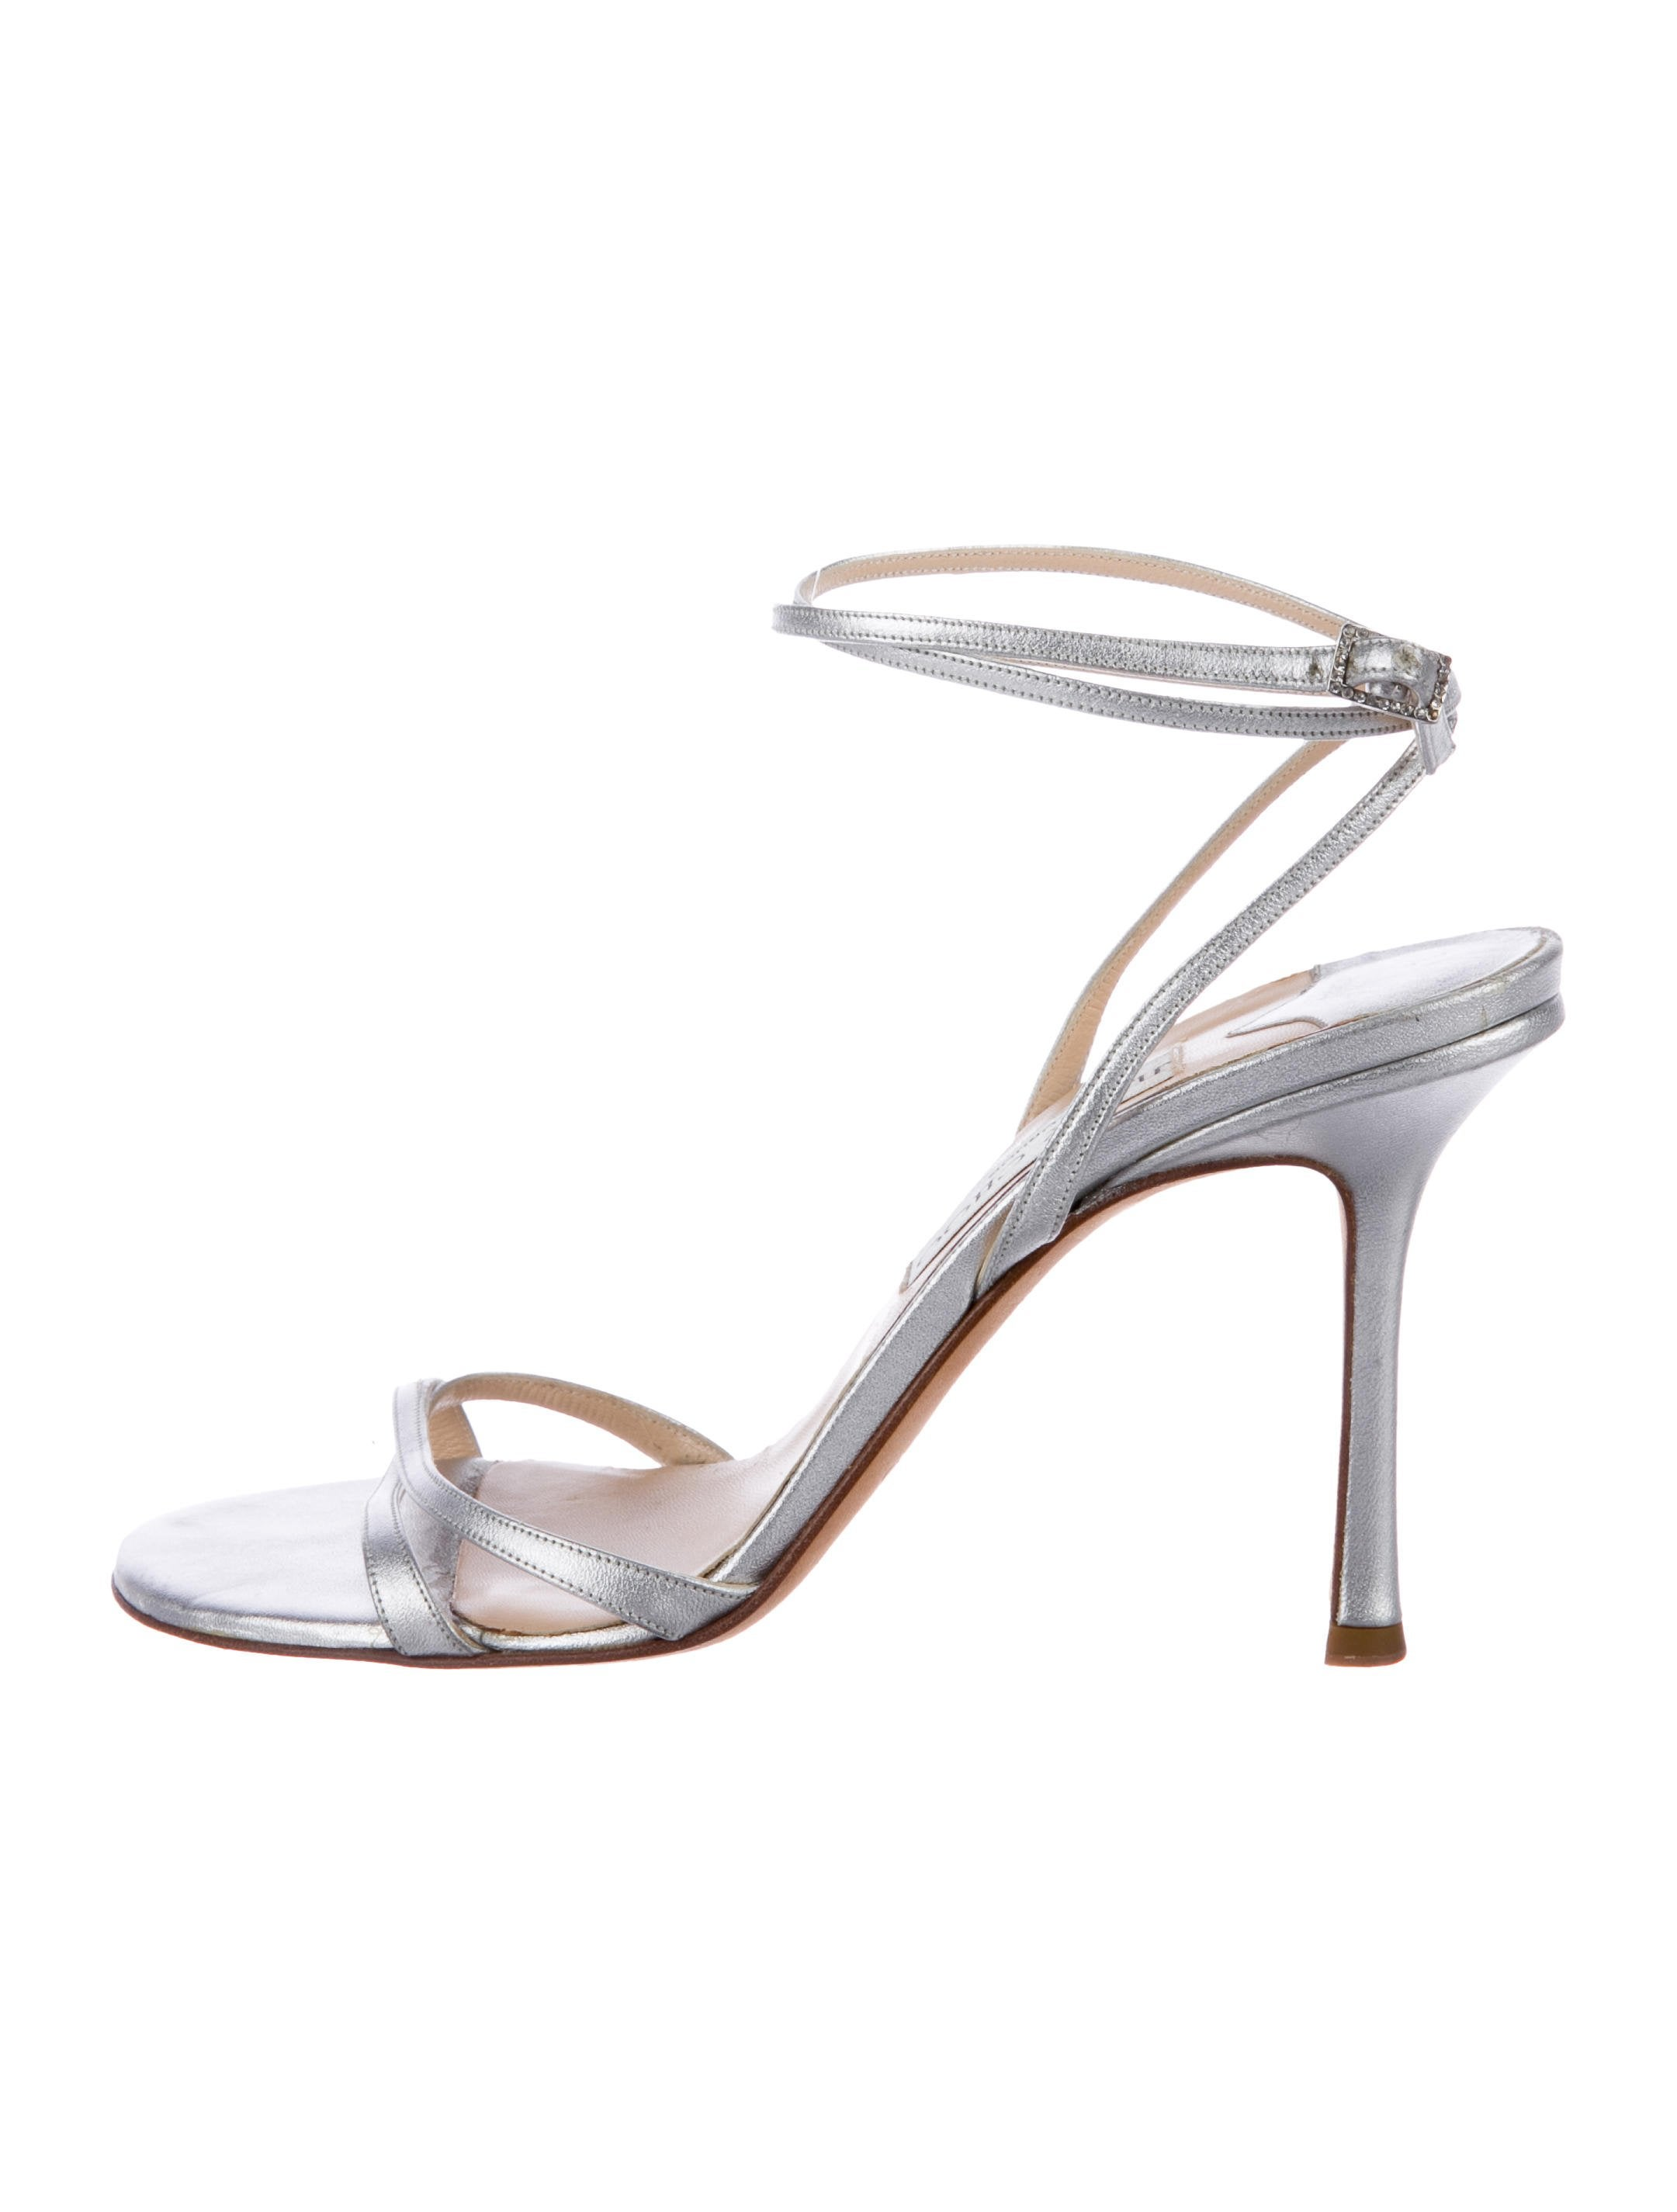 Jimmy Choo Suave Wraparound Sandals discount buy 8bbRMDetGI